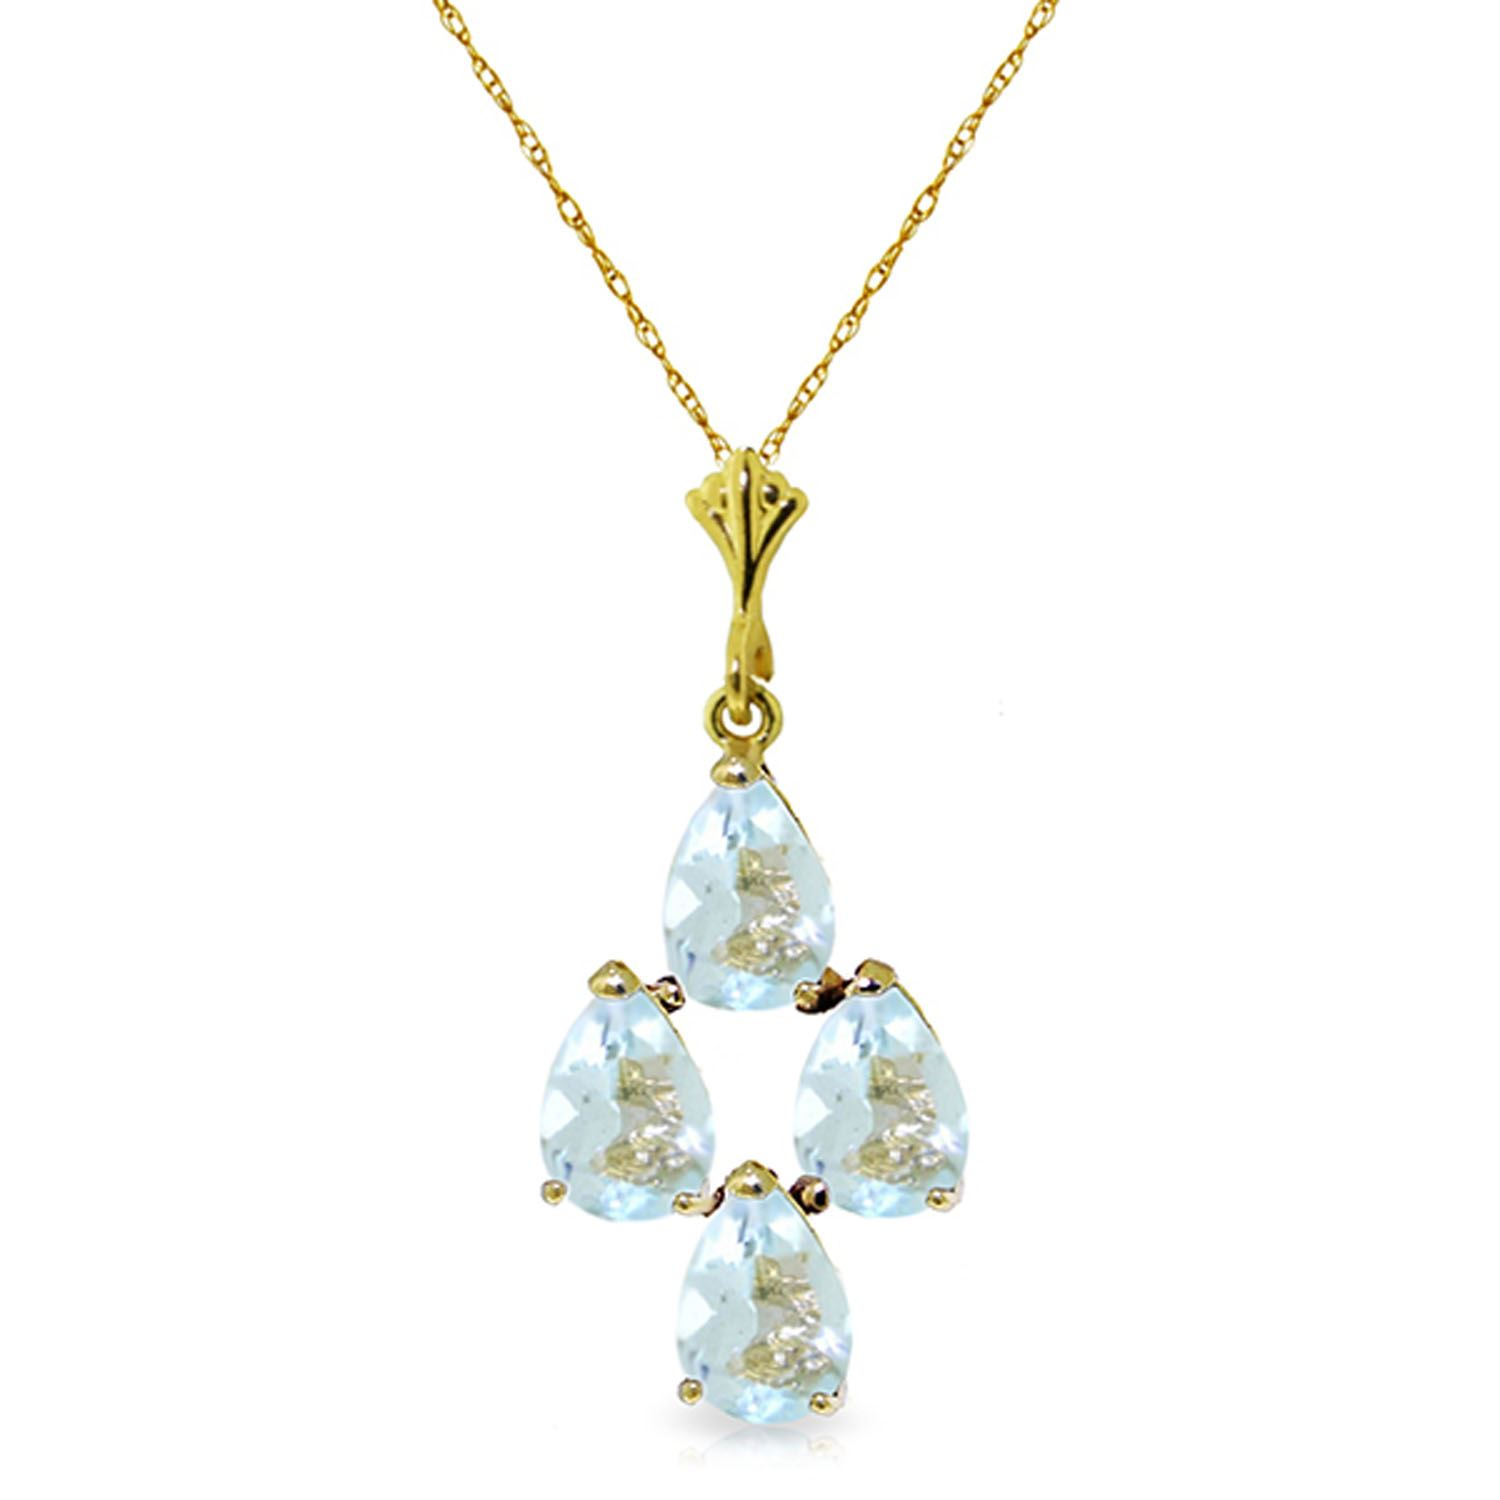 ALARRI 1.95 CTW 14K Solid Gold Surprise Me Aquamarine Necklace with 22 Inch Chain Length. by ALARRI